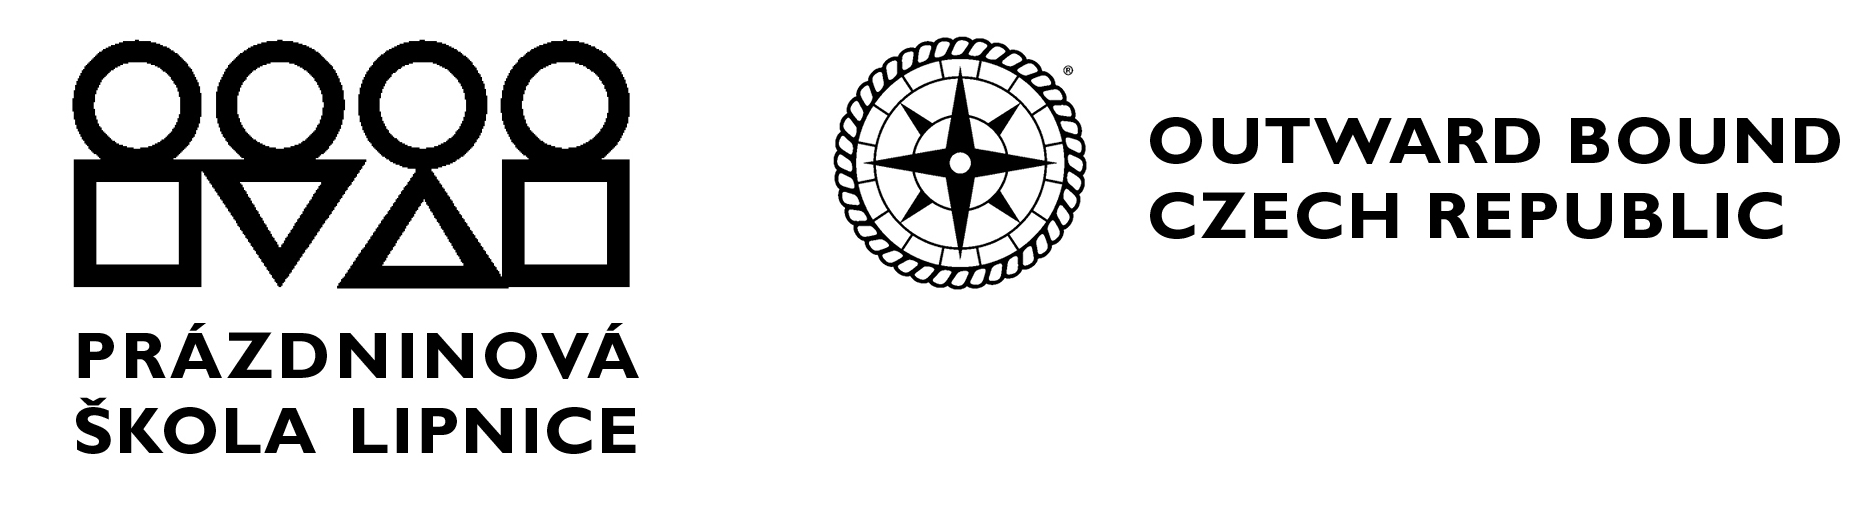 Outward Bound Czech Republic logo